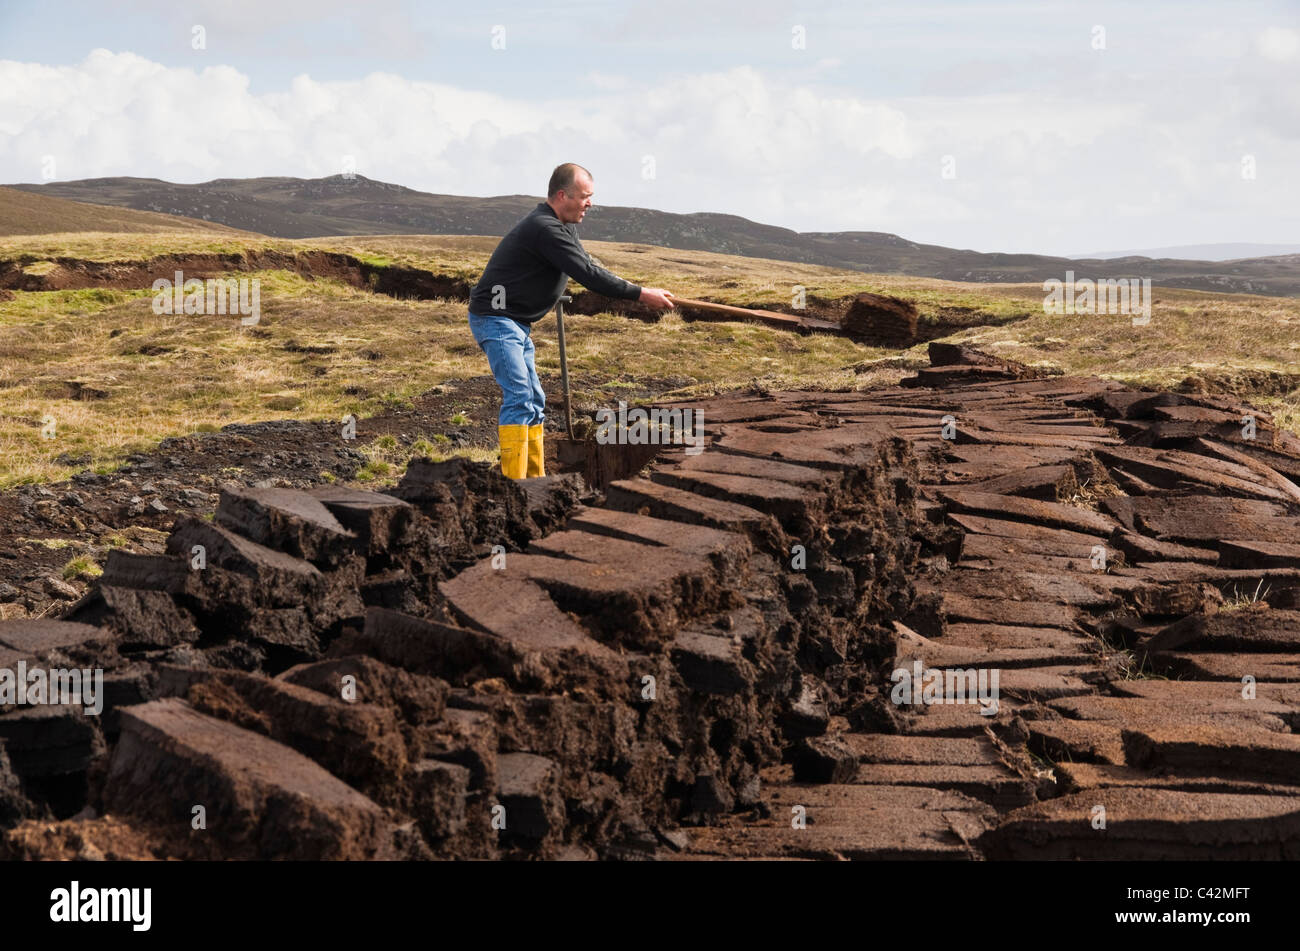 Man cutting peat blocks stacked for drying as traditional fuel. Shetland Islands, Scotland, UK, Europe. - Stock Image